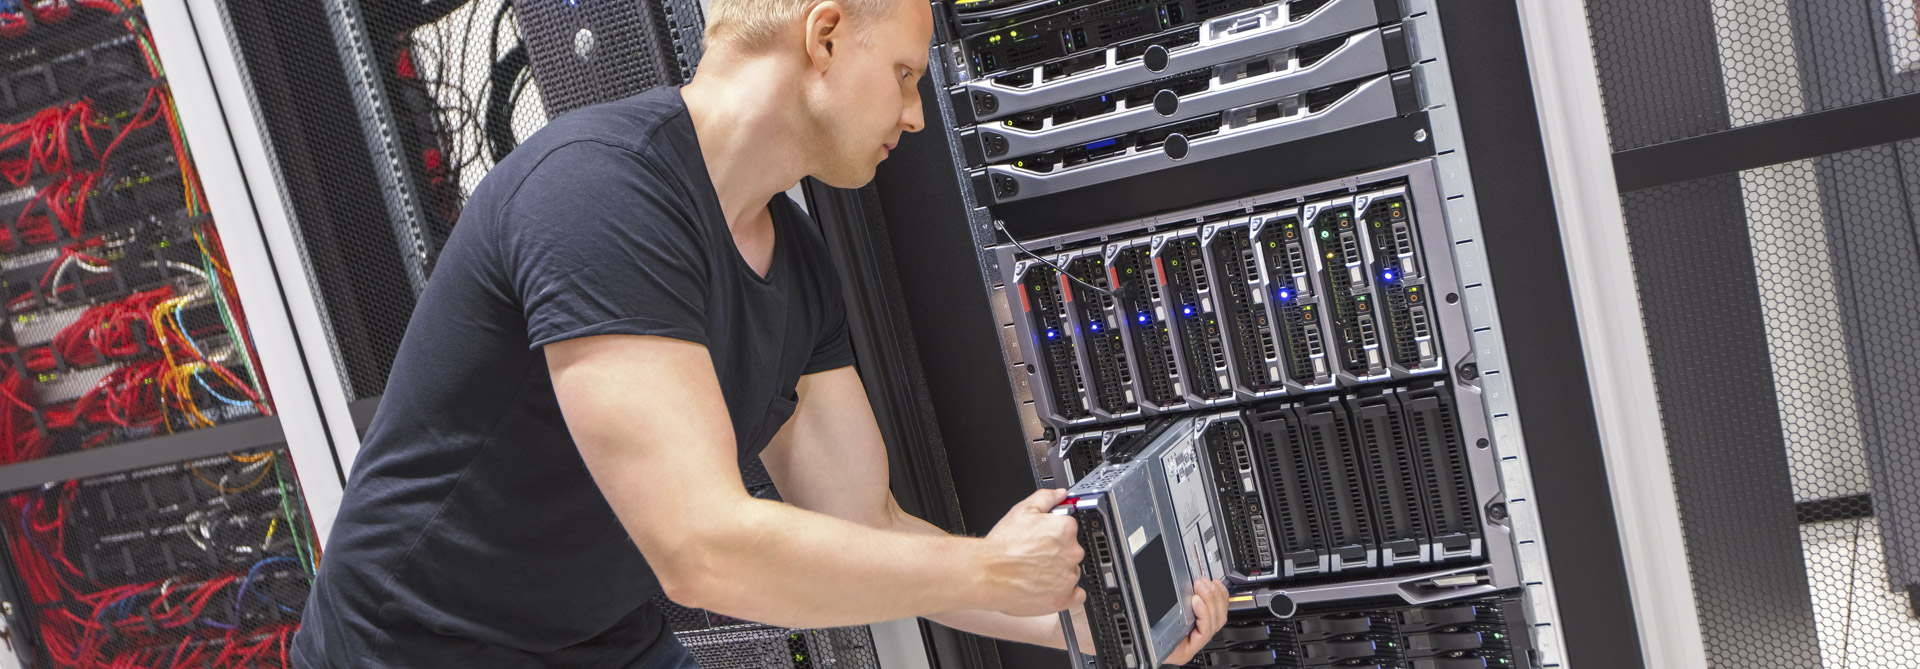 When Should We Replace Our Server – IS that the question?